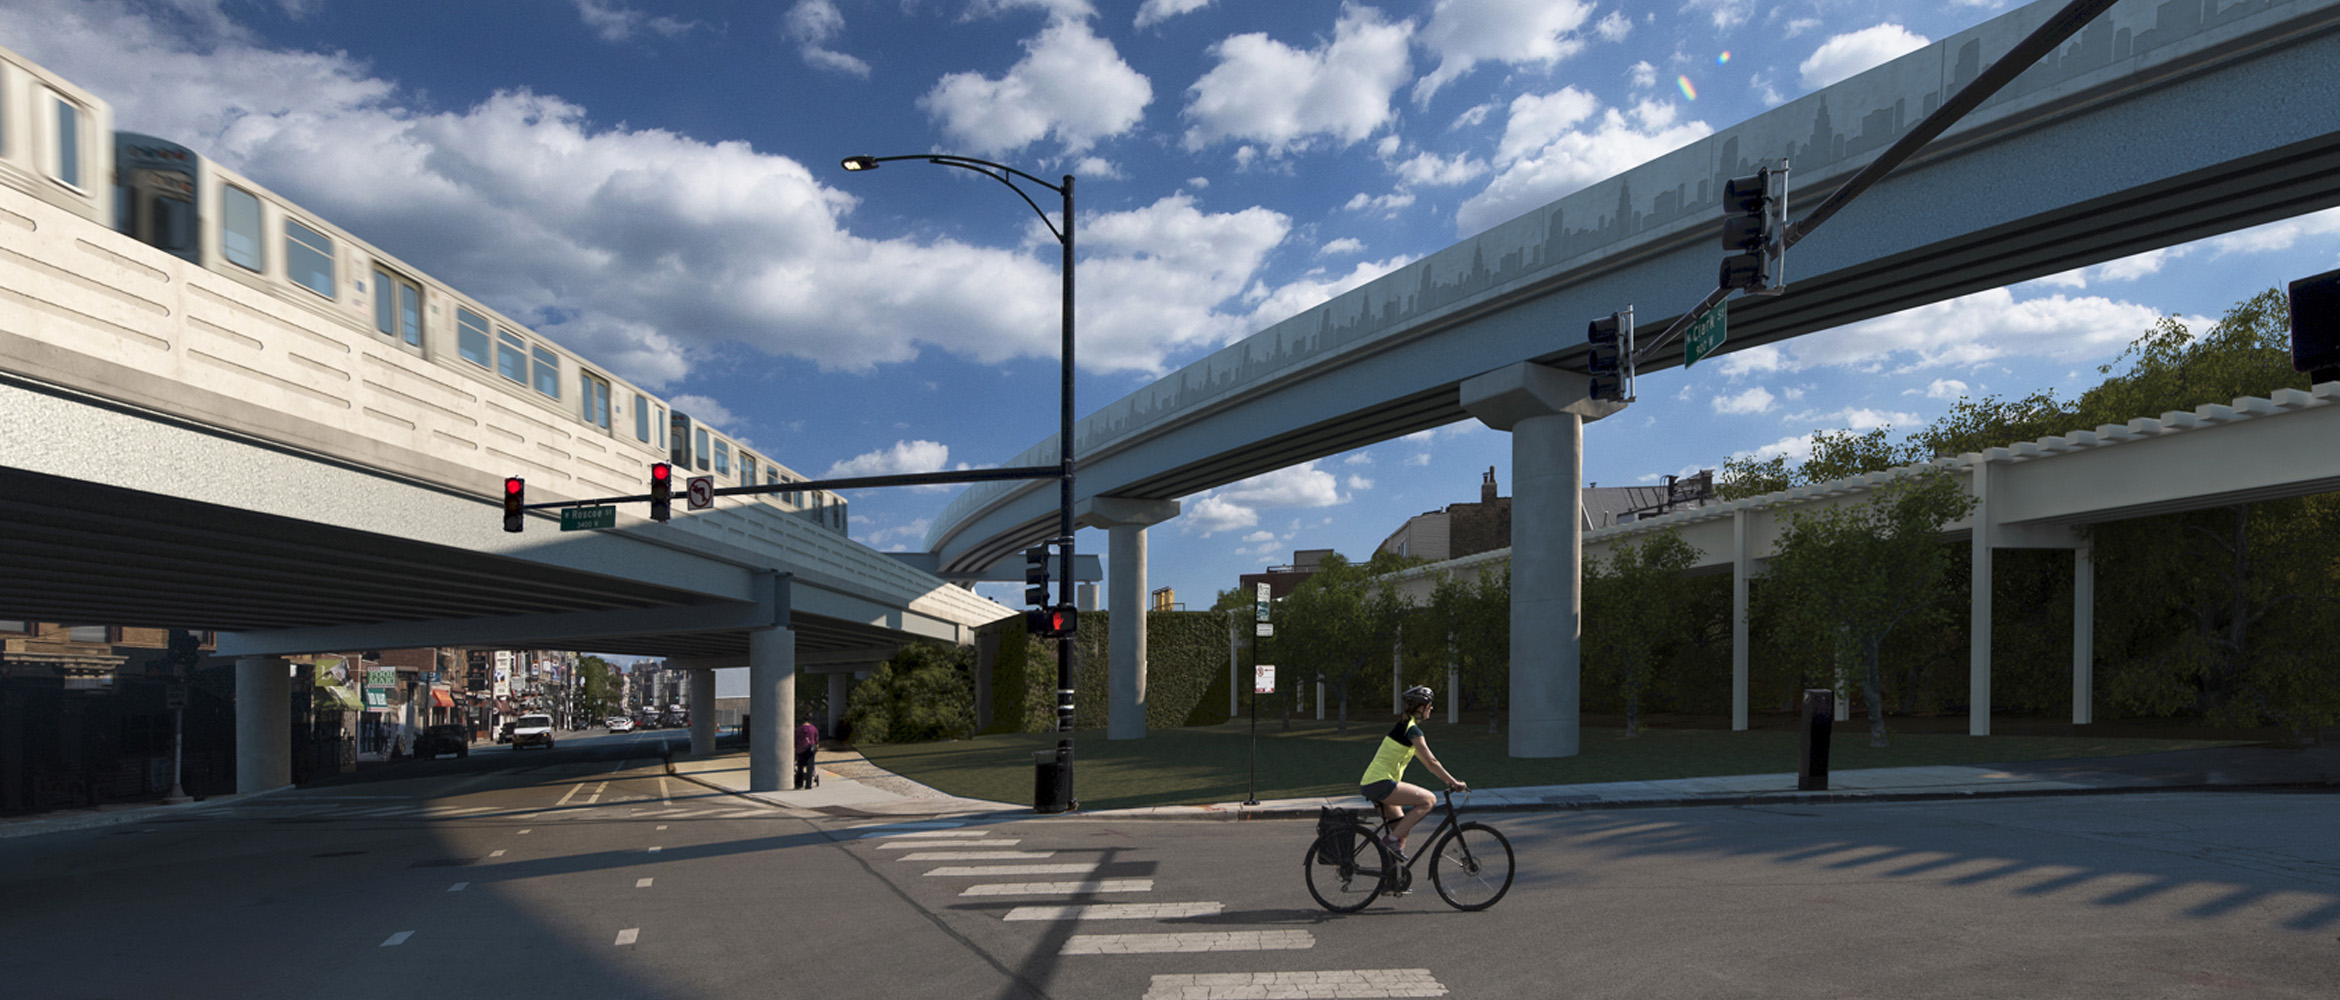 SYSTRA Awarded Contract on Chicago's Rail Mass Transit System